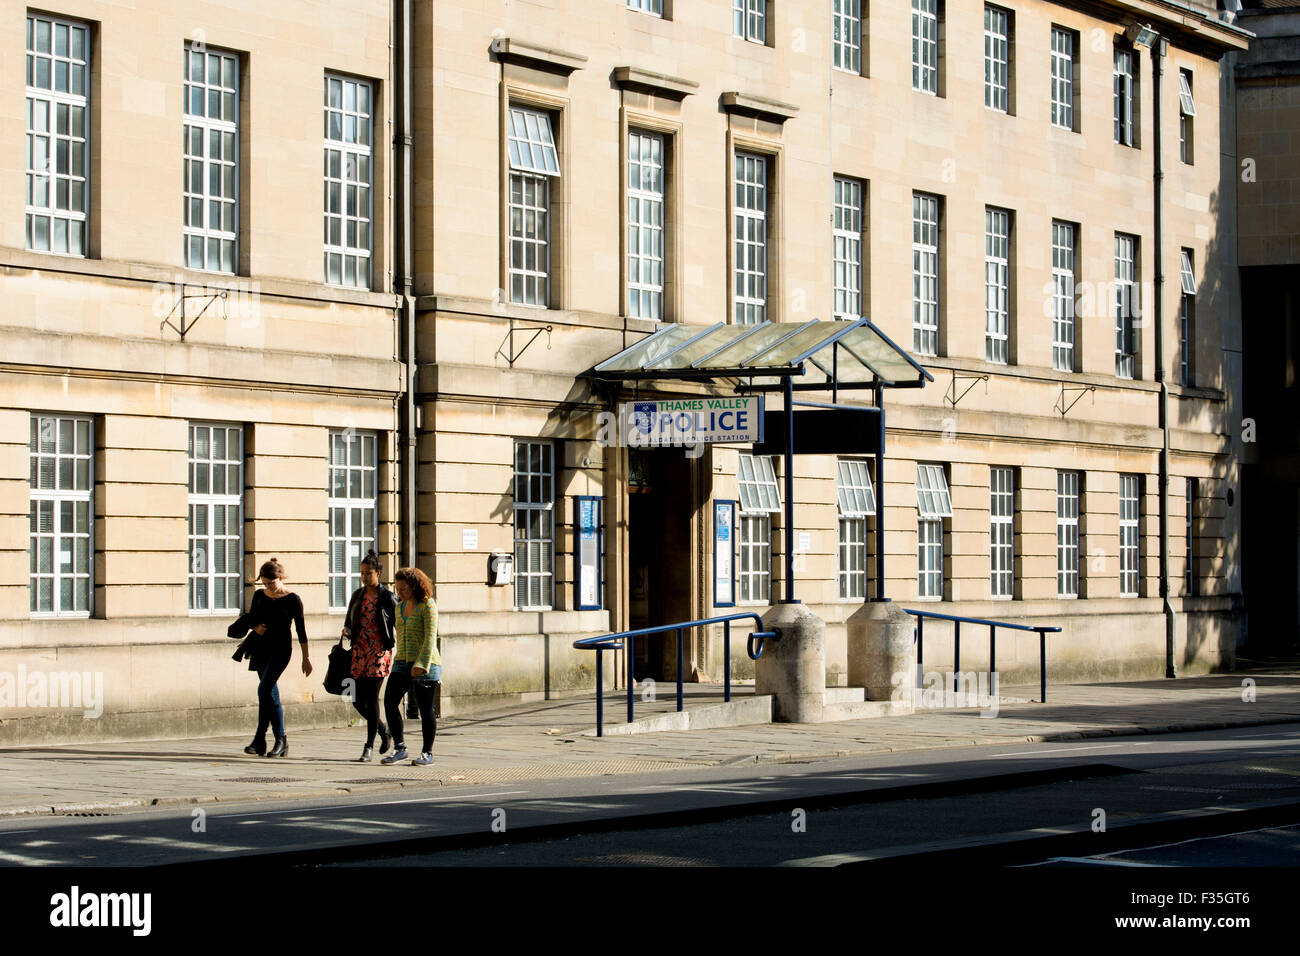 St. Aldates Police Station, Oxford, UK - Stock Image